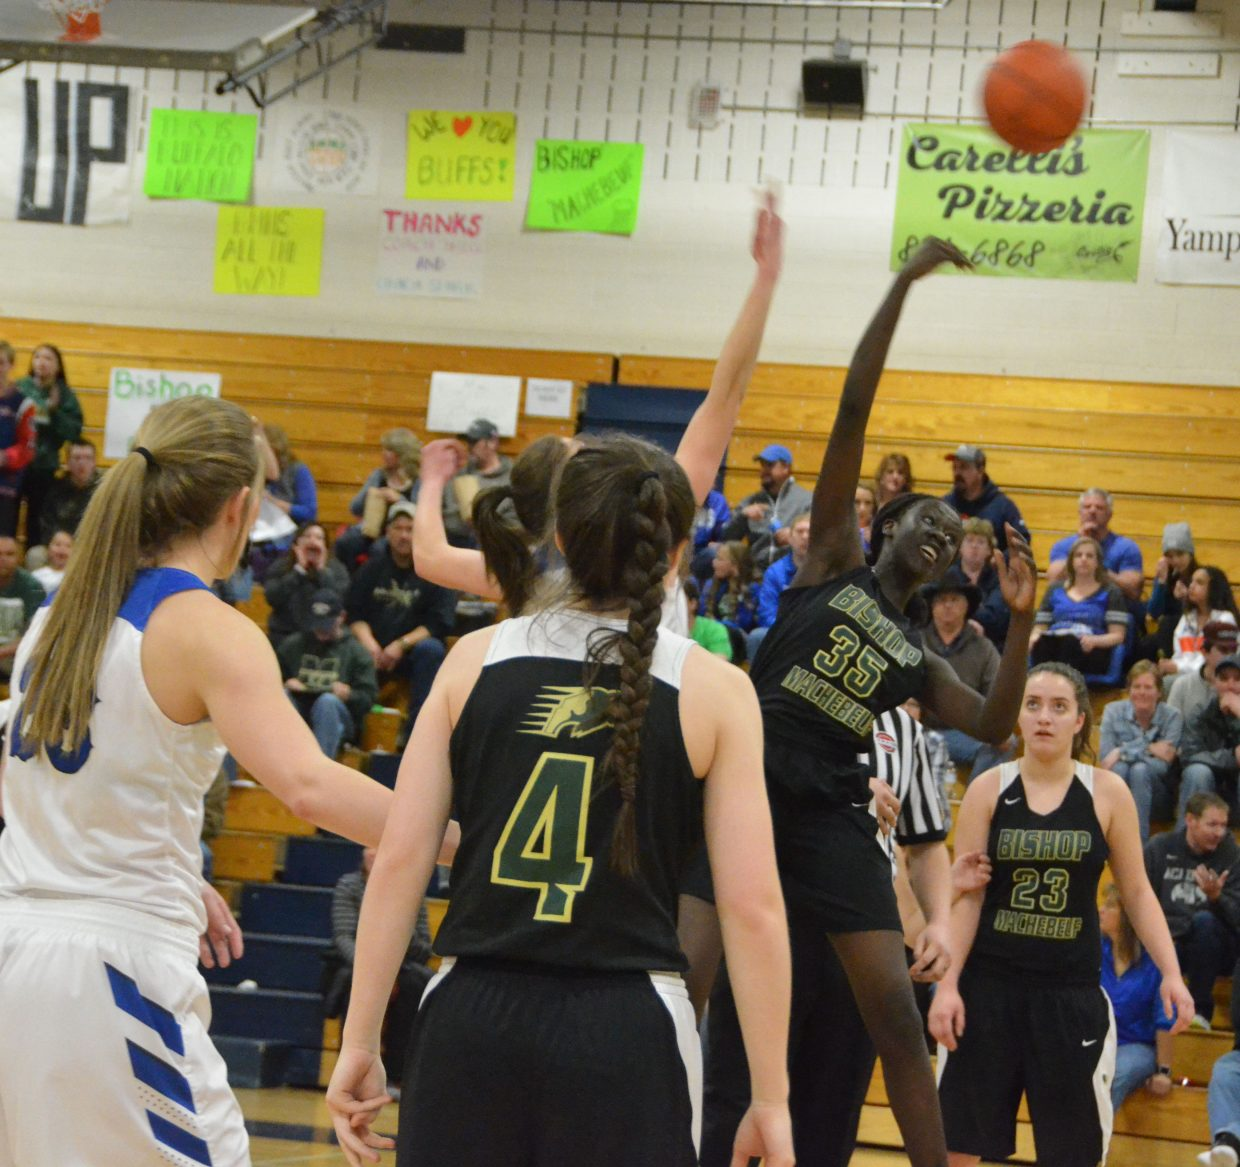 Bishop Machebeuf's Adet Mebany wins the opening tipoff in the Round of 32 at Moffat County High School.